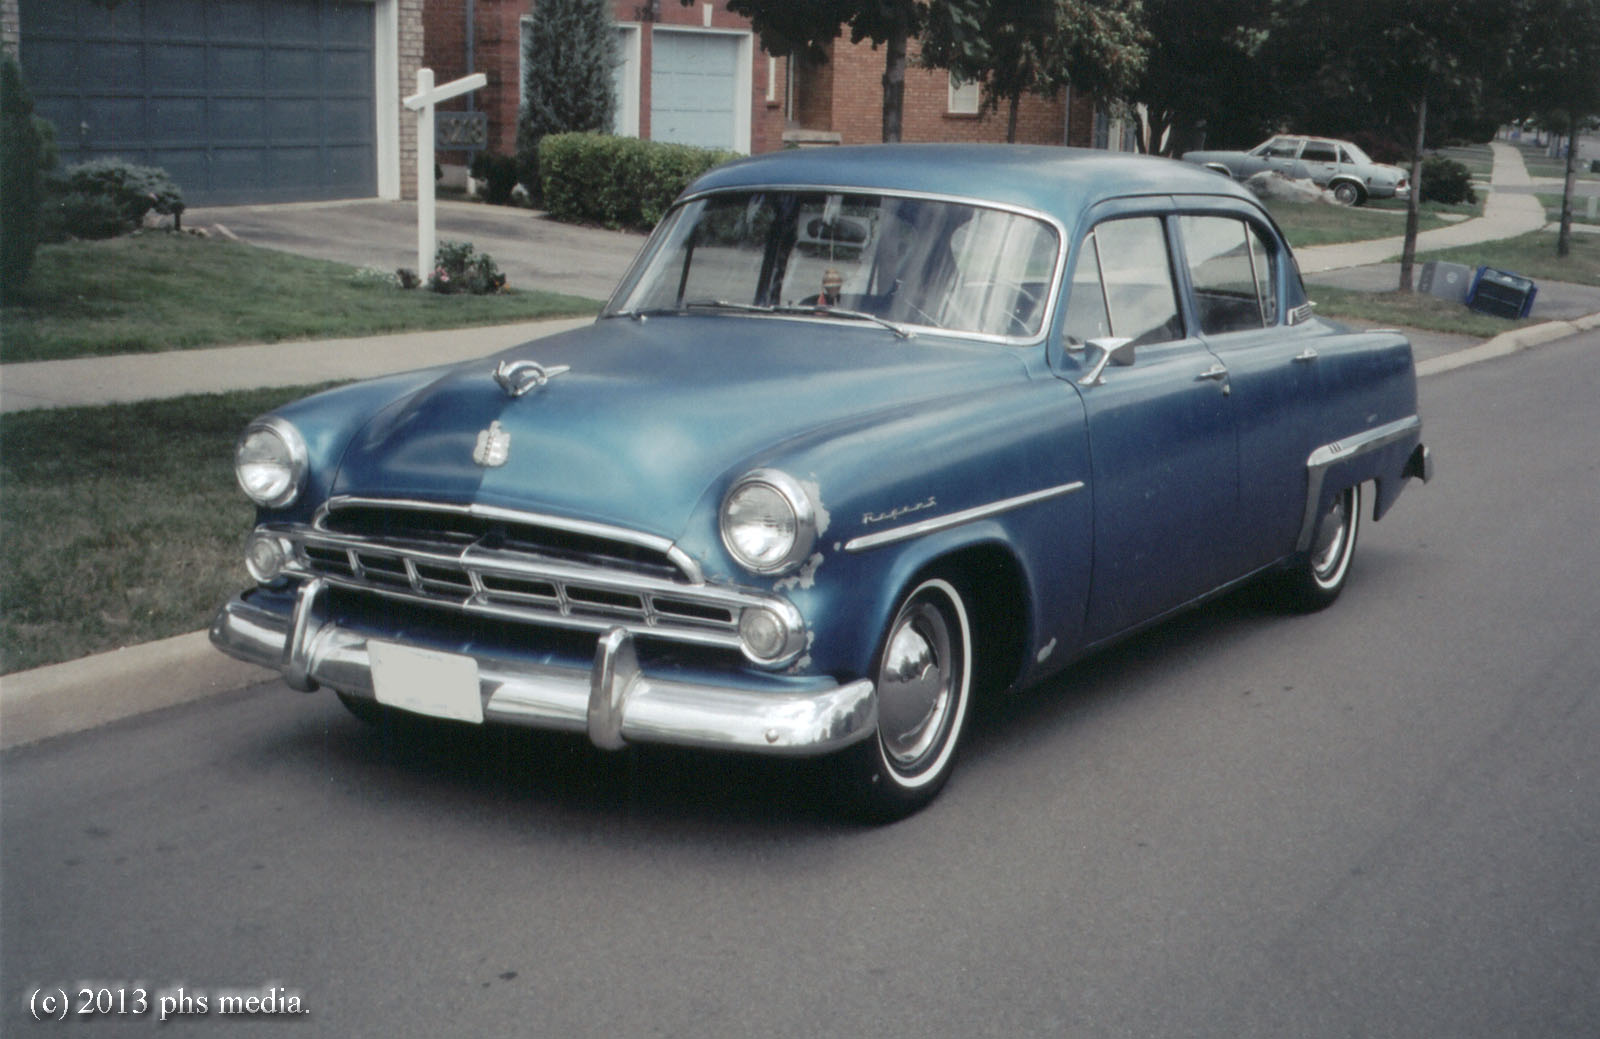 1953 dodge regent sedan phscollectorcarworld rh phscollectorcarworld blogspot com Meadowbrook Car Will Meadowbrook's